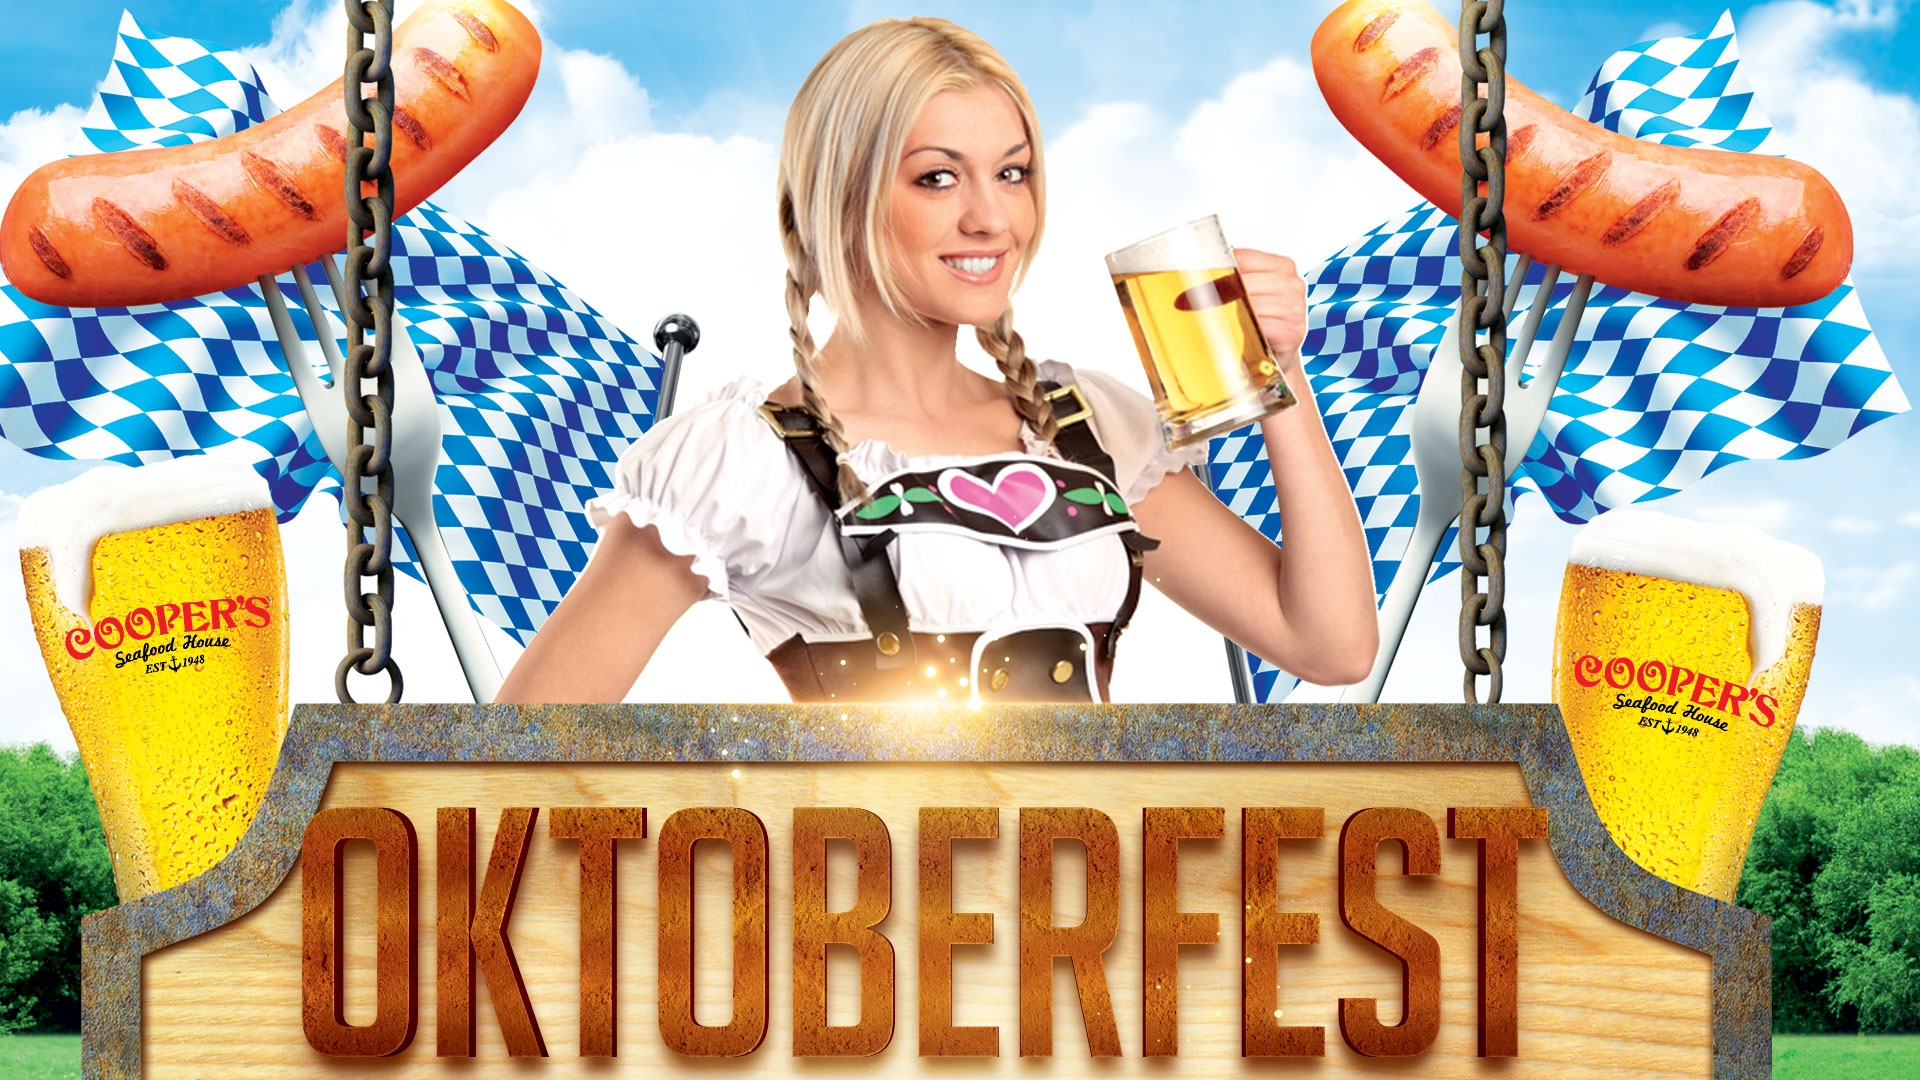 Oktoberfest Wallpapers - WallpaperSafari